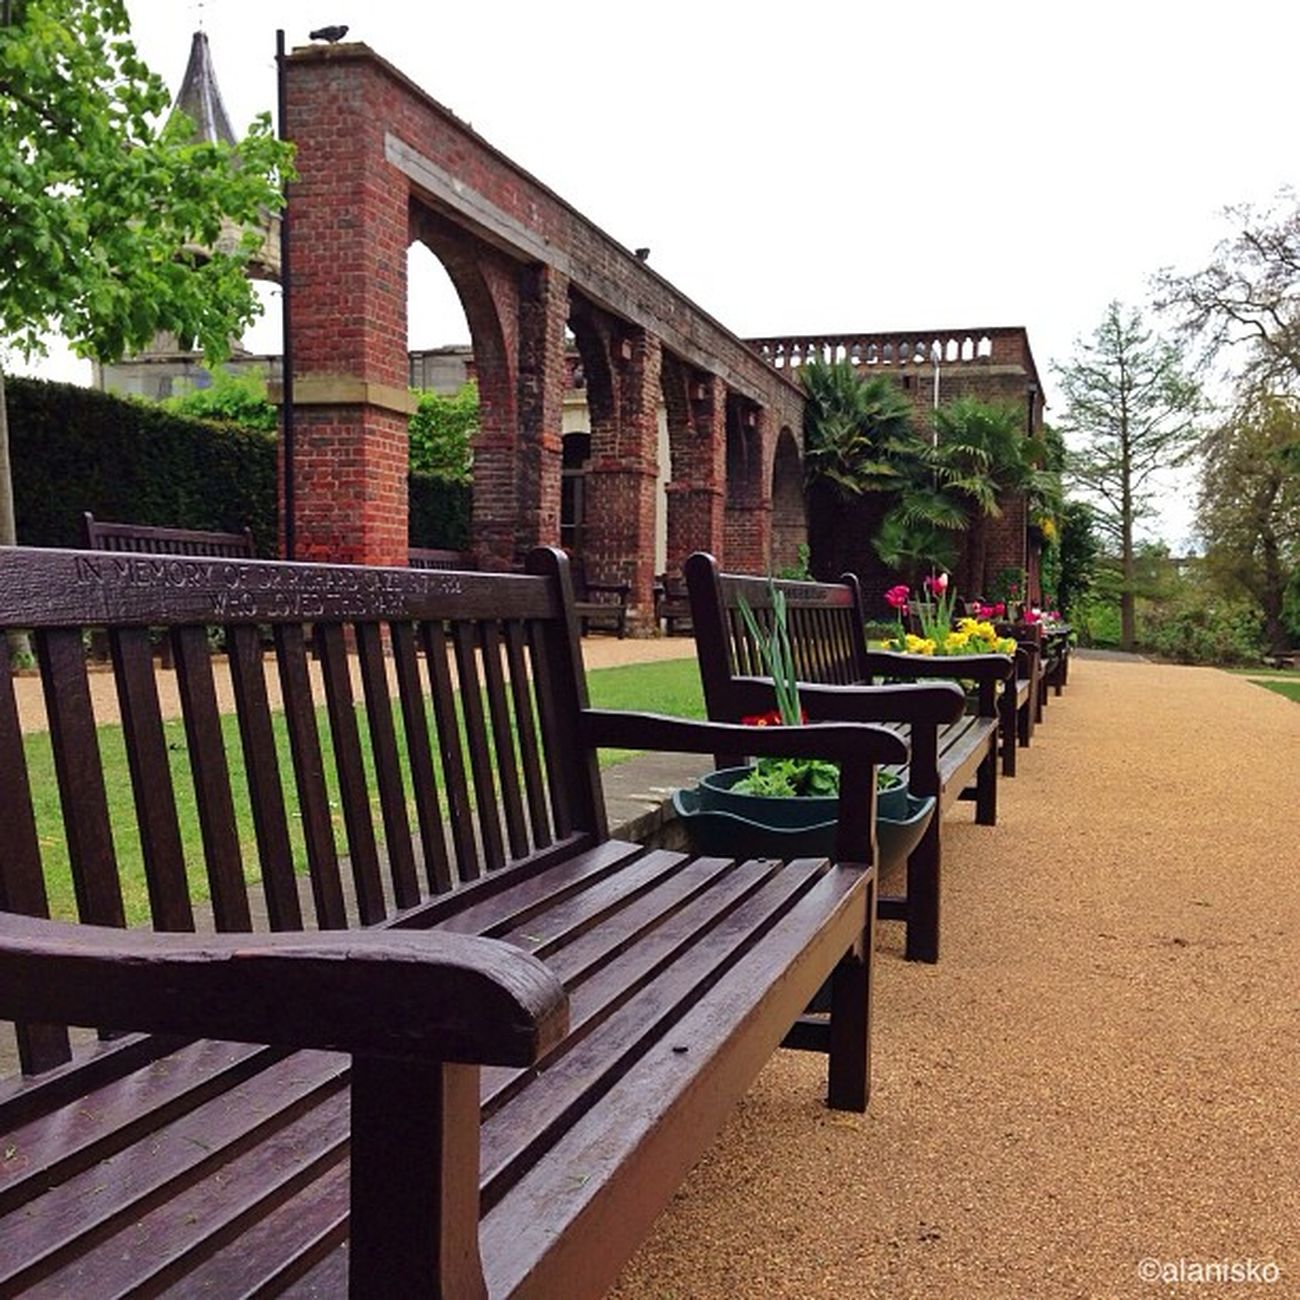 Few more #benches from #holland park ????#alan_in_london #gf_uk #gang_family #igers_london #insta_london #london_only #thisislondon #ic_cities #ic_cities_london #ig_england #love_london #gi_uk #ig_london #londonpop Gi_uk Igers_london Ig_england Love_london Holland Ic_cities_london Benches Ig_london Londonparks Gang_family Londonpop Claudialovesbenches London_only Ic_cities Gf_uk Alan_in_london Insta_london Parkbenchthursday Thisislondon